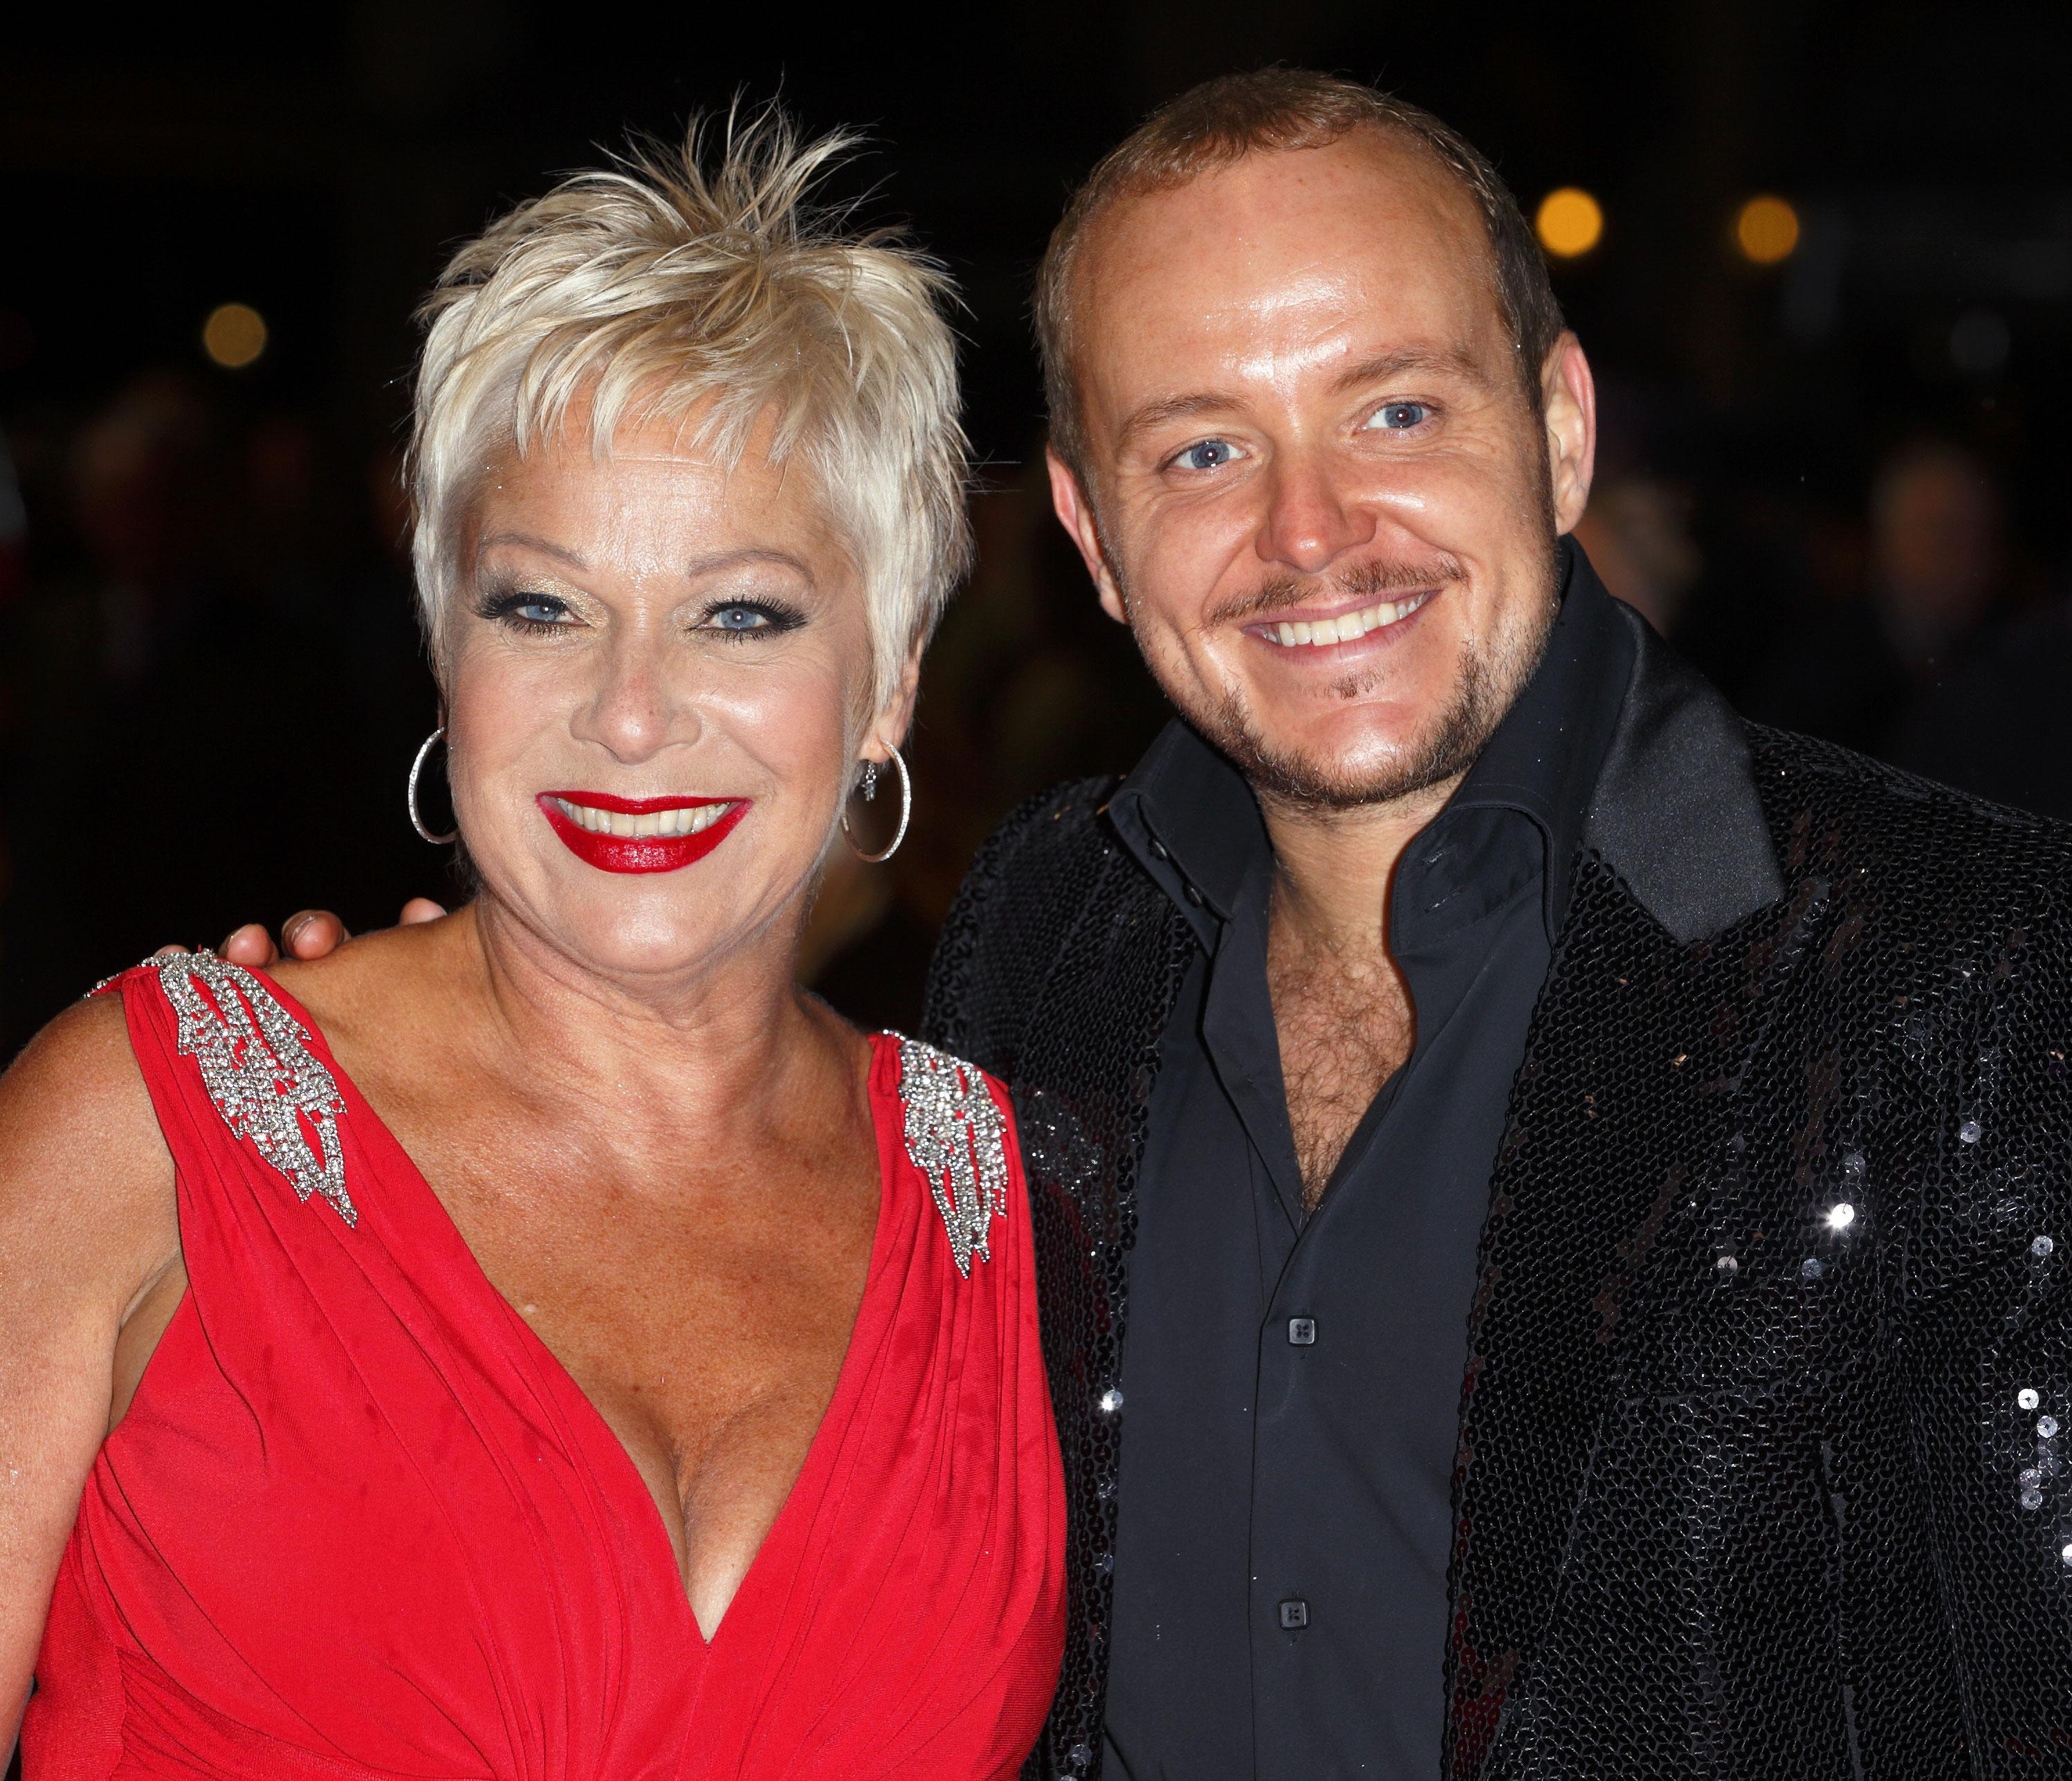 Denise Welch's wedding back on